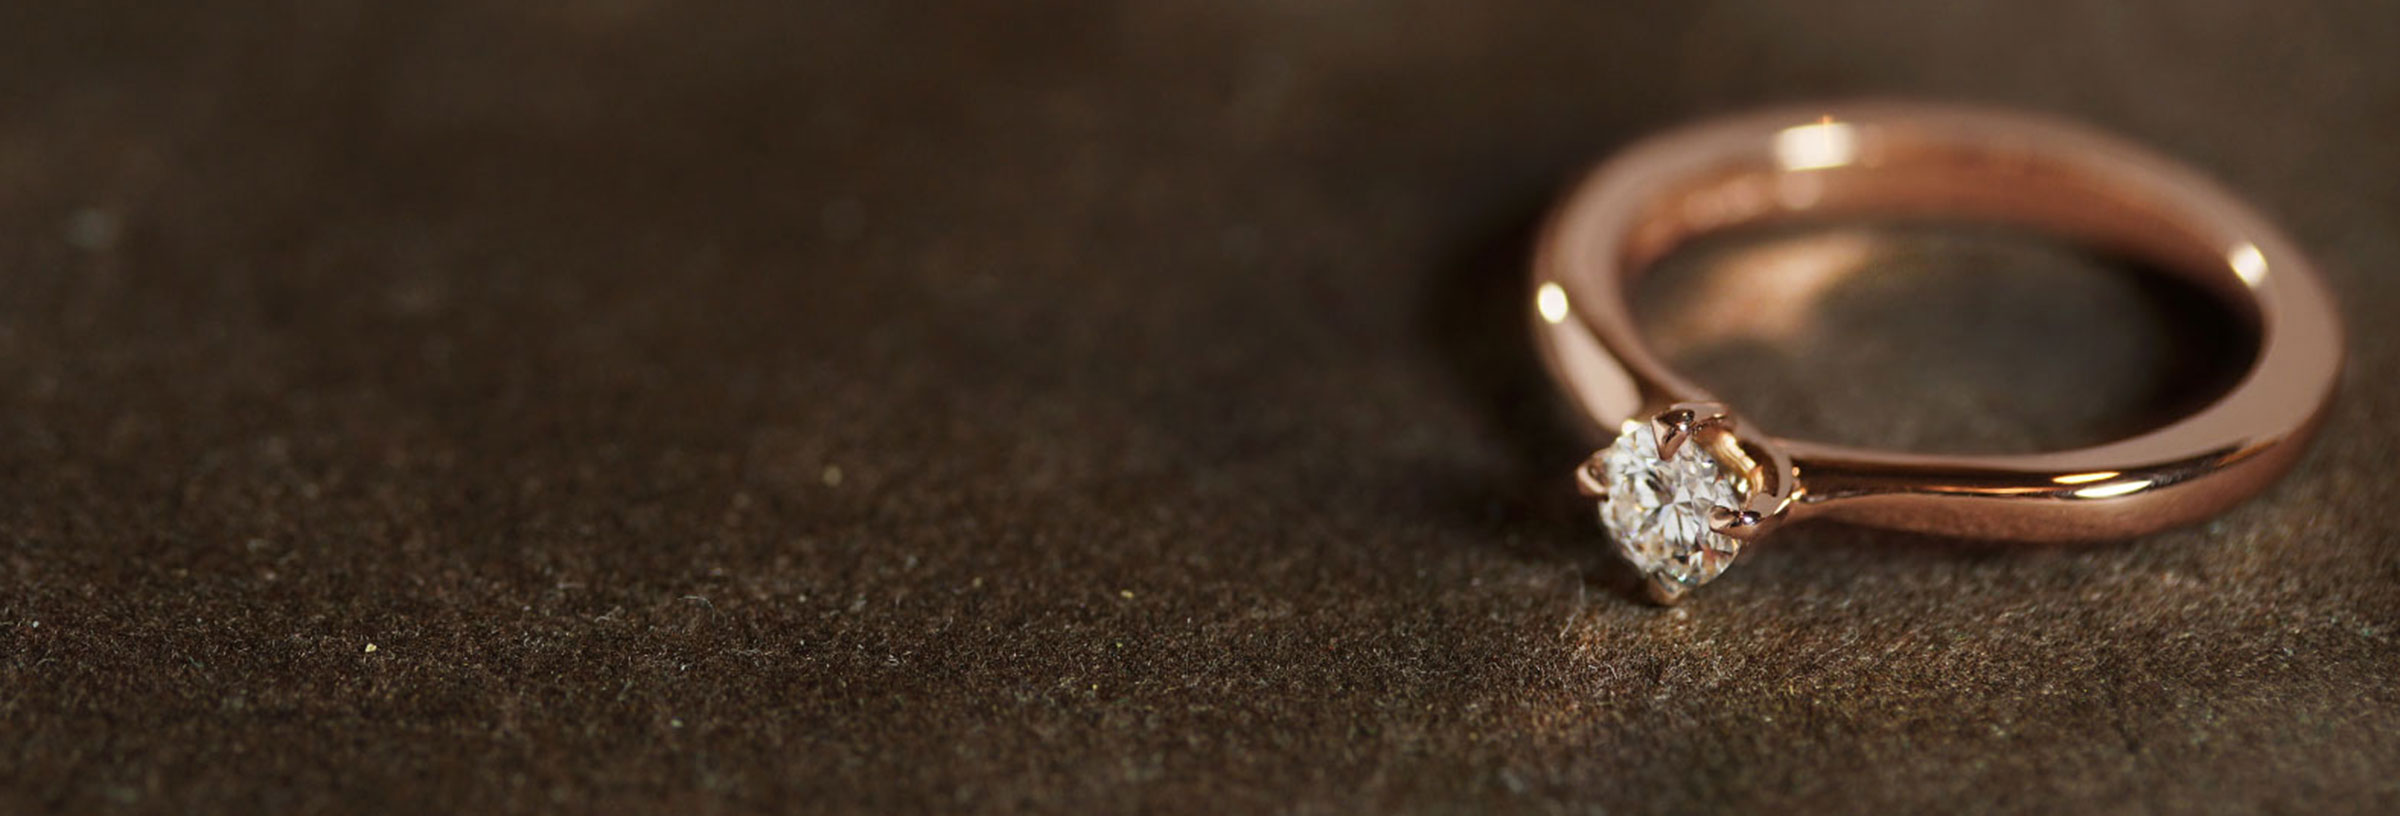 rose-gold-and-diamond-solitaire-mobius-twist-engagement